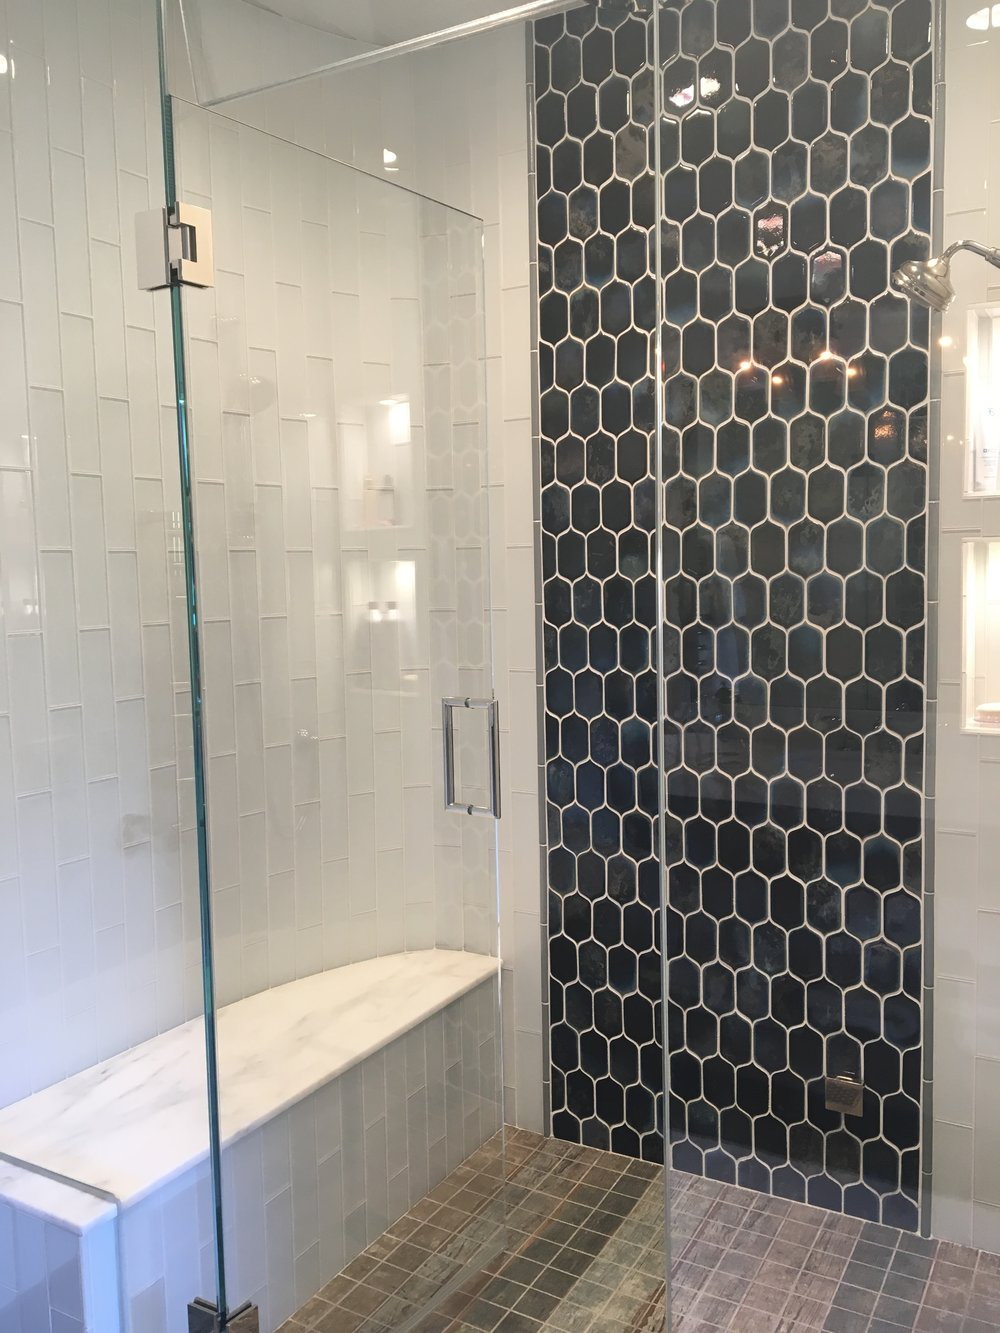 Professional Referrals - Tile City & Stone does not provide any labor or installation services. However, after decades in the industry, we have a select list of contractors that have worked with and refer.For referrals, please contact your nearest showroom HERE.* Tile City & Stone does not accept any liability or responsibility for the work done by any recommended contractor, nor claims made against any contractor. Tile City & Stone encourages all home owners to do their due diligence and ensure that any contractors are licensed, bonded, and insured.